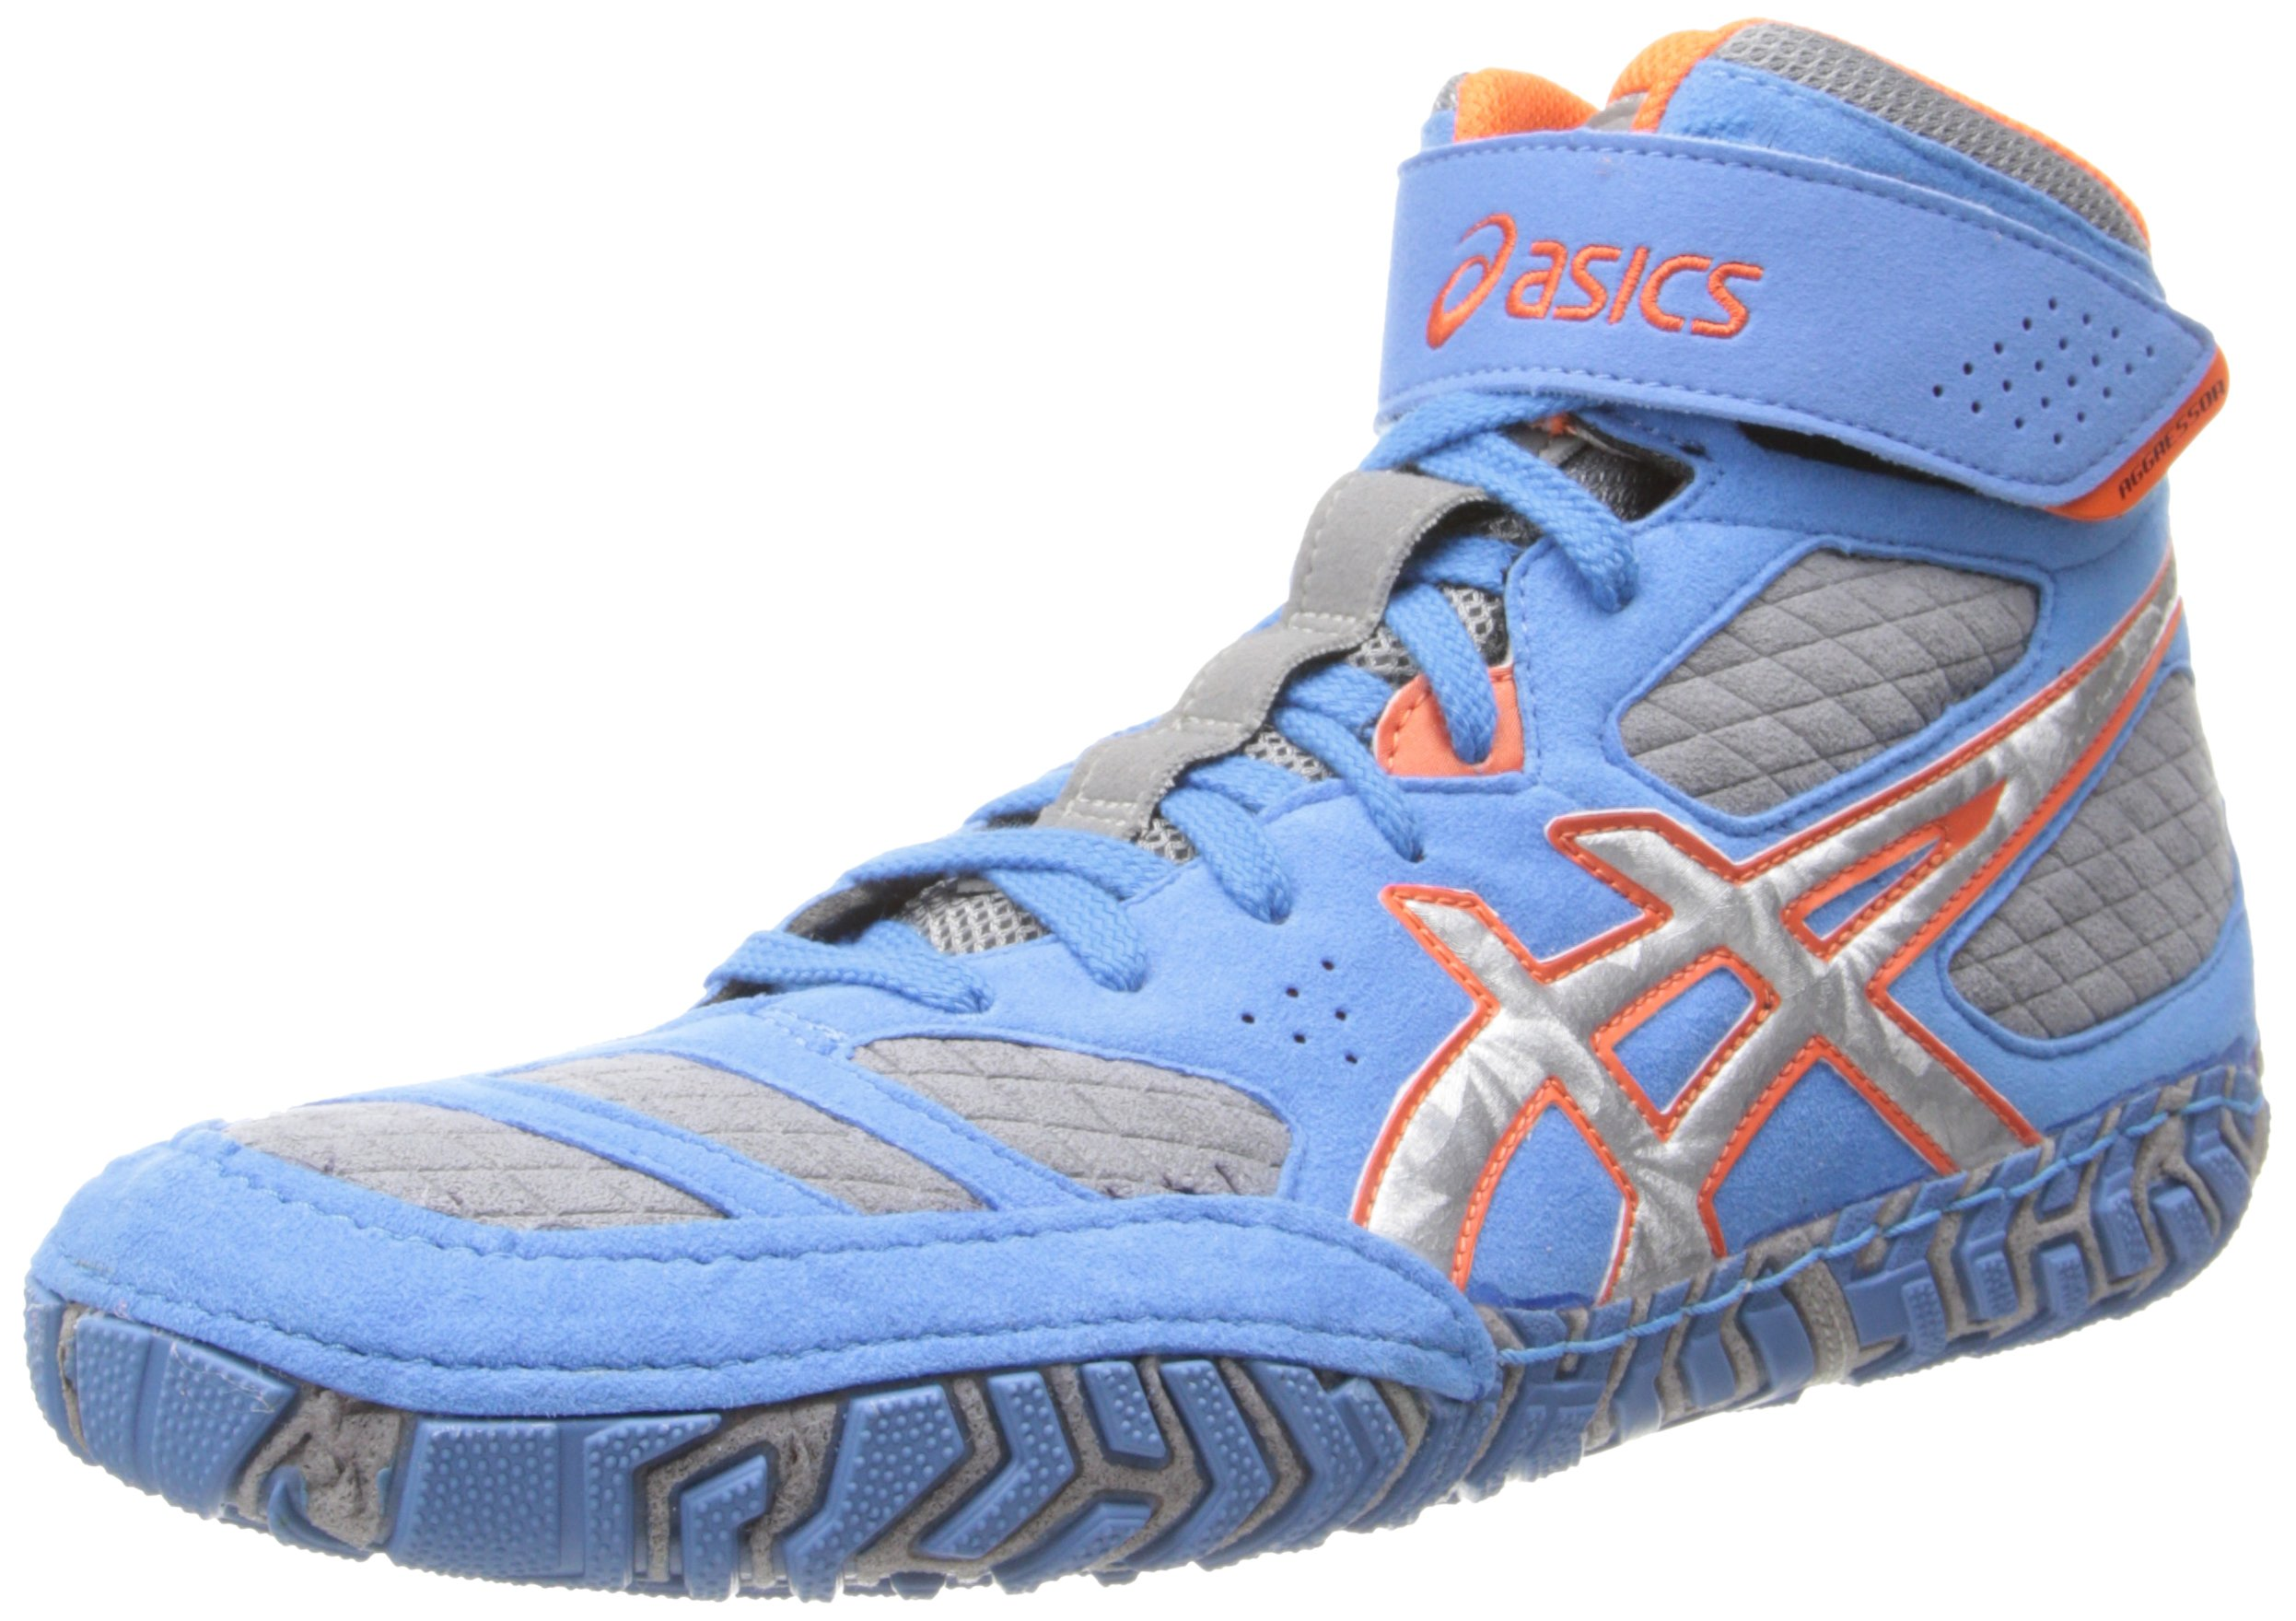 ASICS Men's Aggressor 2 Wrestling Shoe,Dusty Blue/Silver/Red Orange,10 M US by ASICS